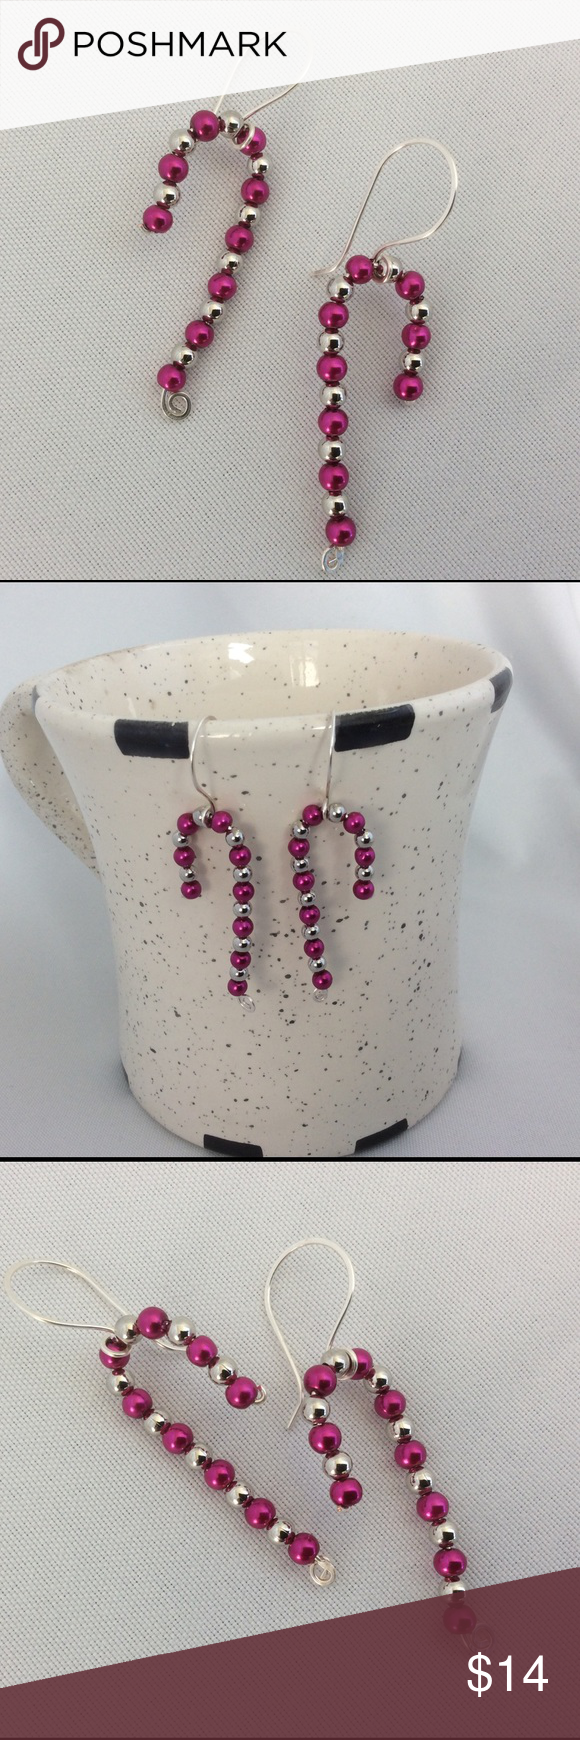 Pink And Silver Candy Cane Earrings These Are Absolutely Adorable You Will  Love Wearing Them